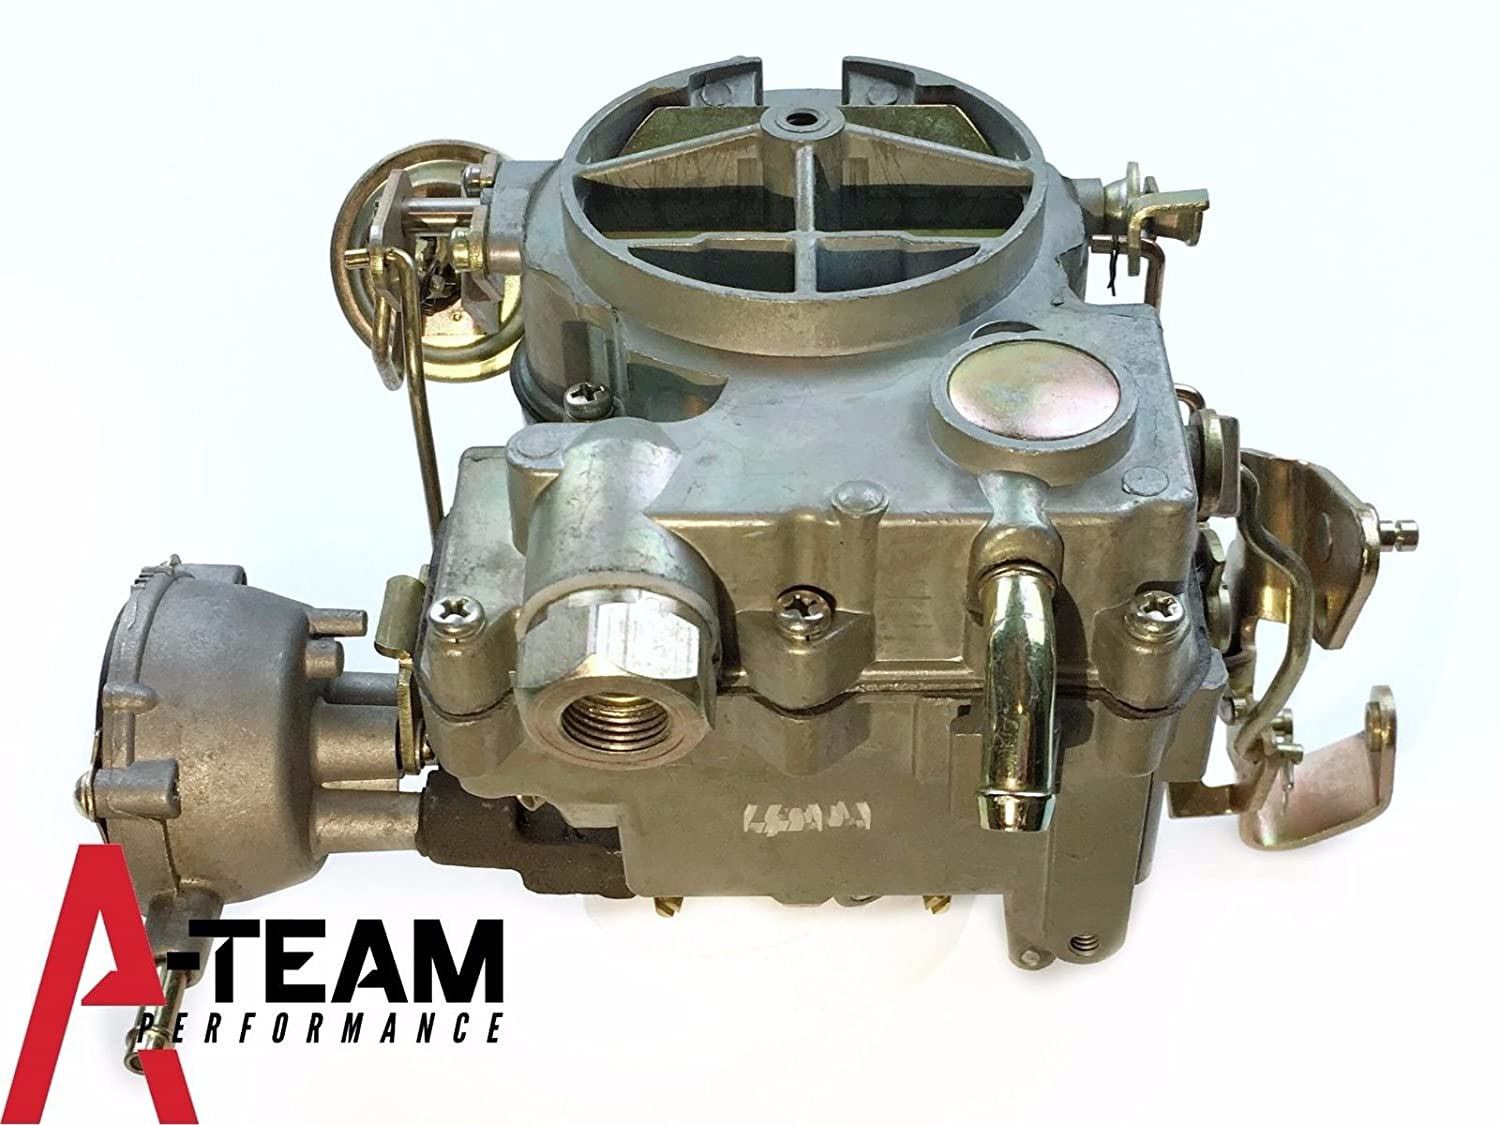 5. A-Team Performance 155 Carb TYPE ROCHESTER